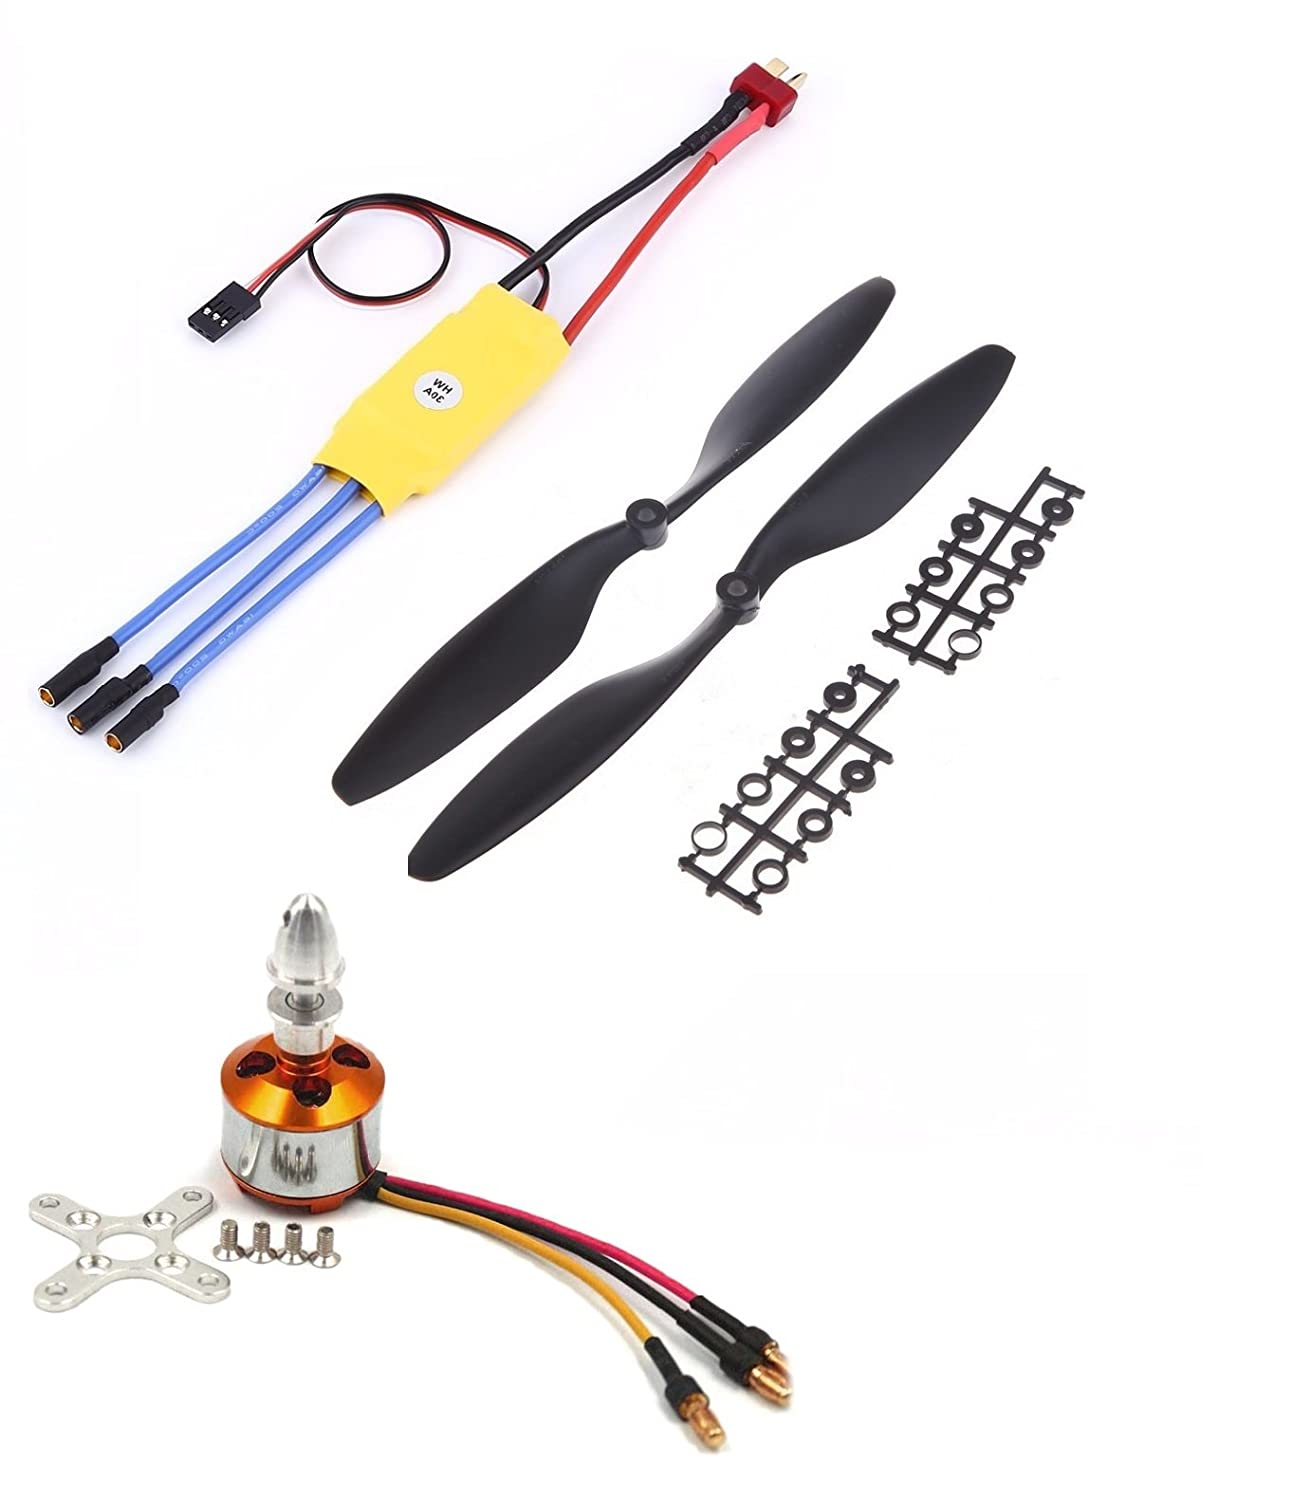 Invento F450 Quadcopter Diy Kit Kk215 Frame 2200kv Bldc Orangerx Kk2 Wiring Diagram 30a Esc 1045 Propellor Industrial Scientific